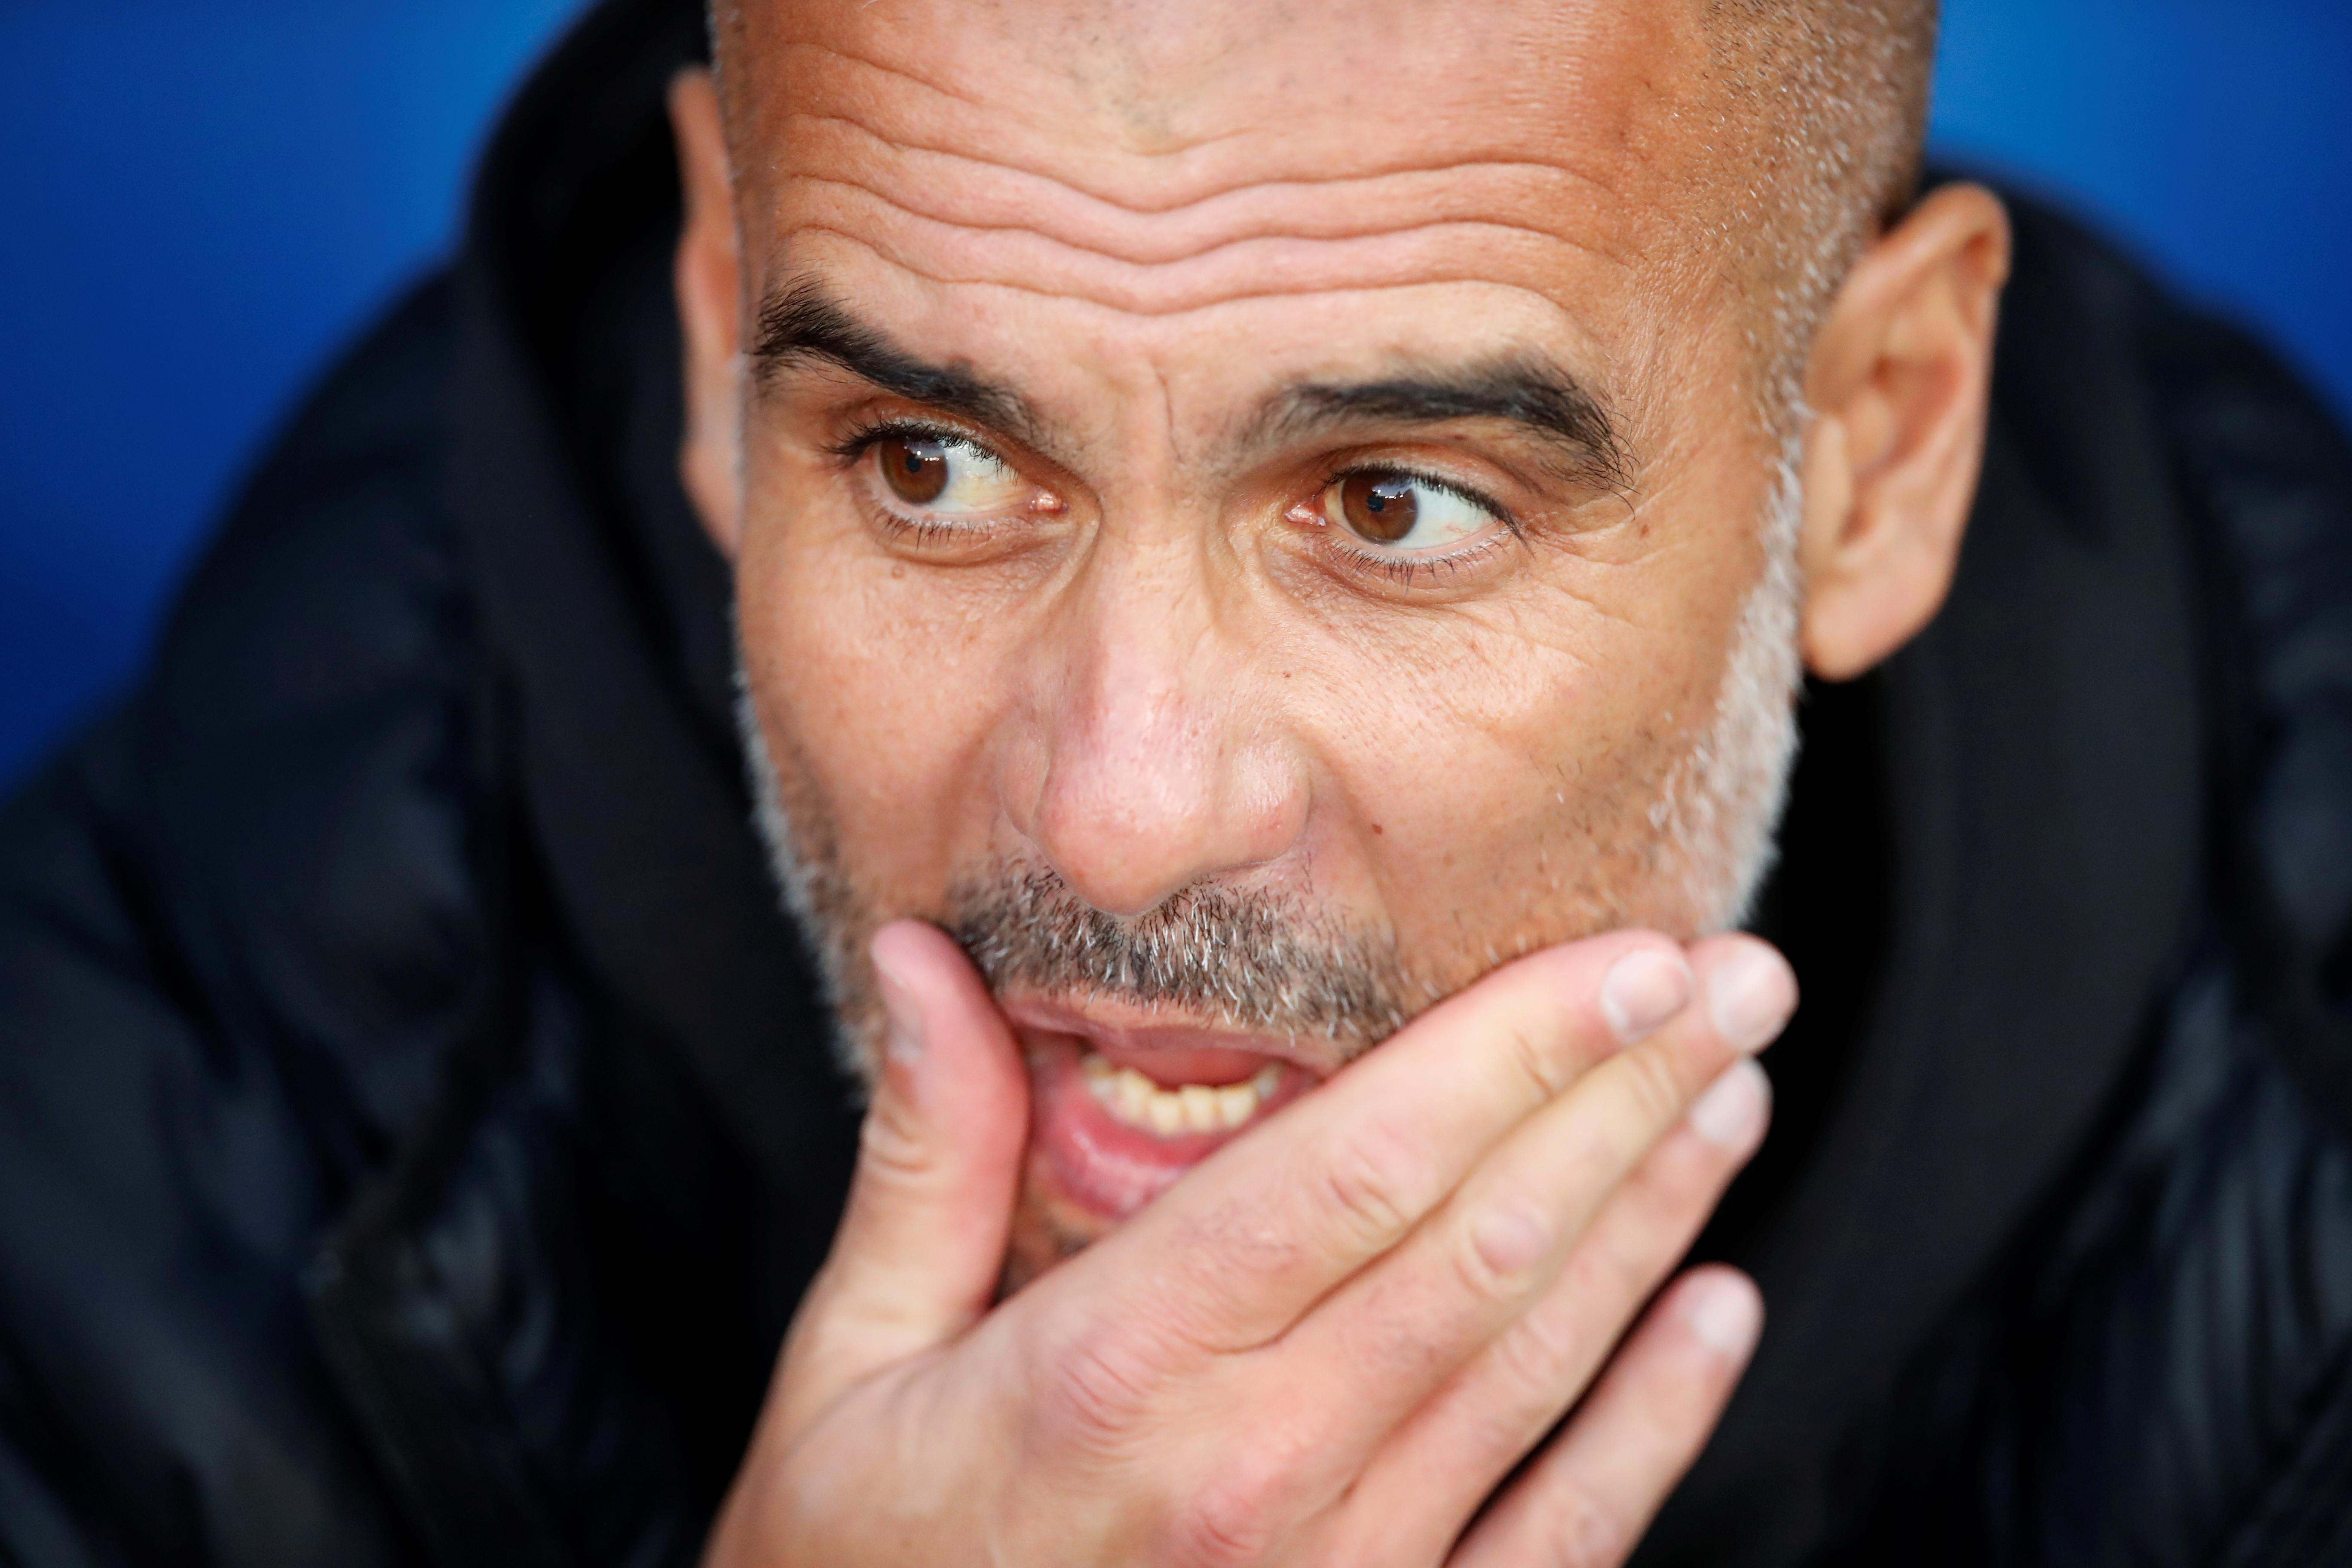 Manchester City not ready to win Champions League - Guardiola